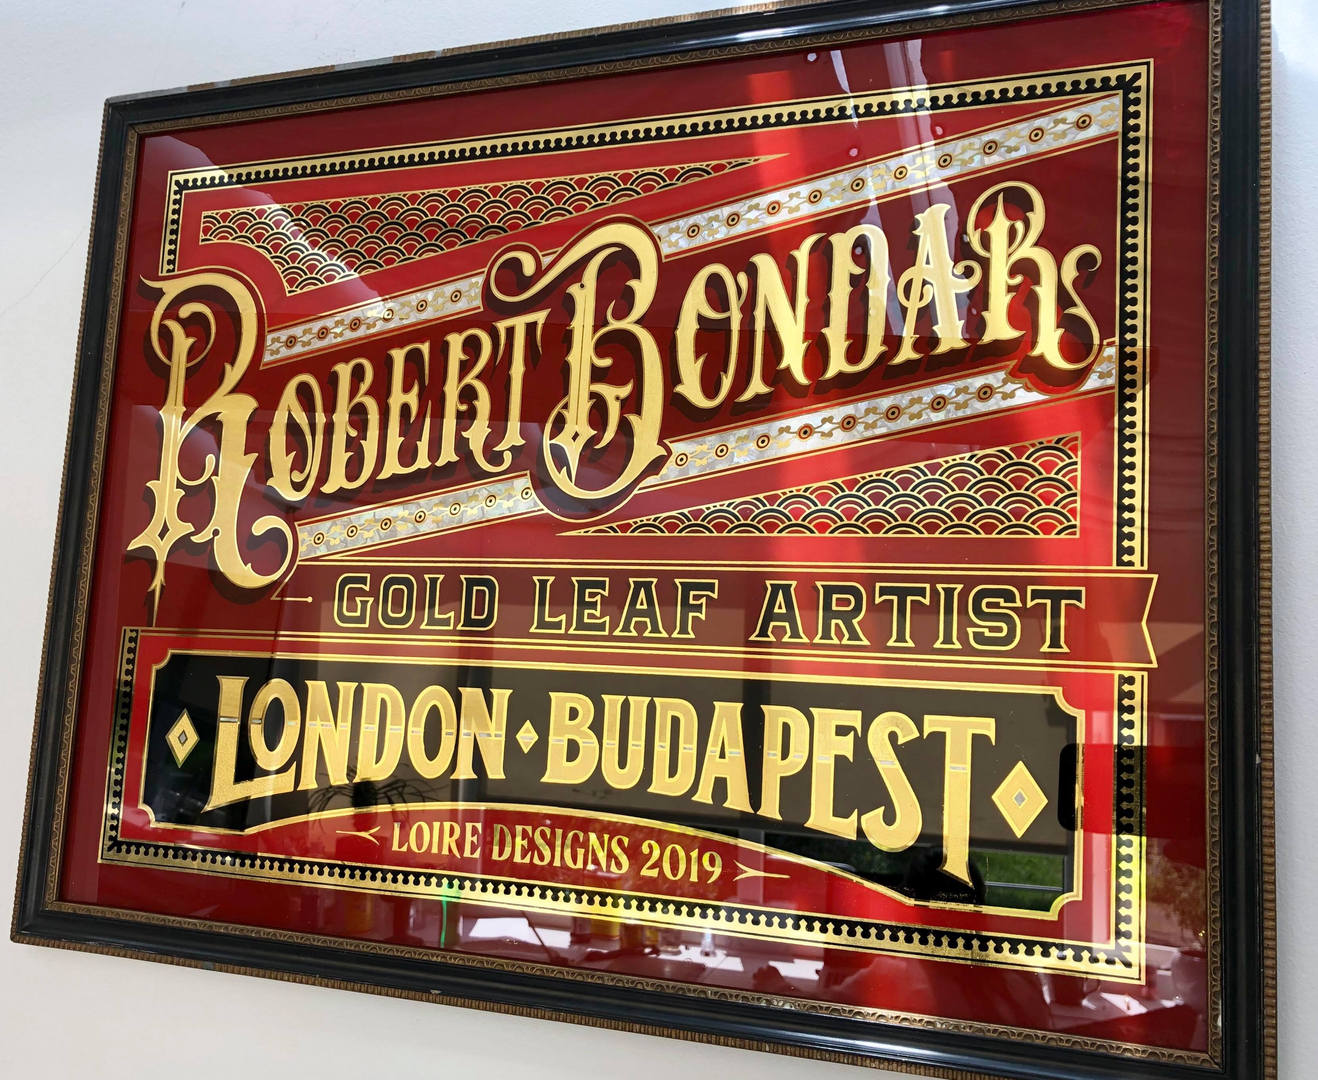 Robert Bondar glass gilding.jpg